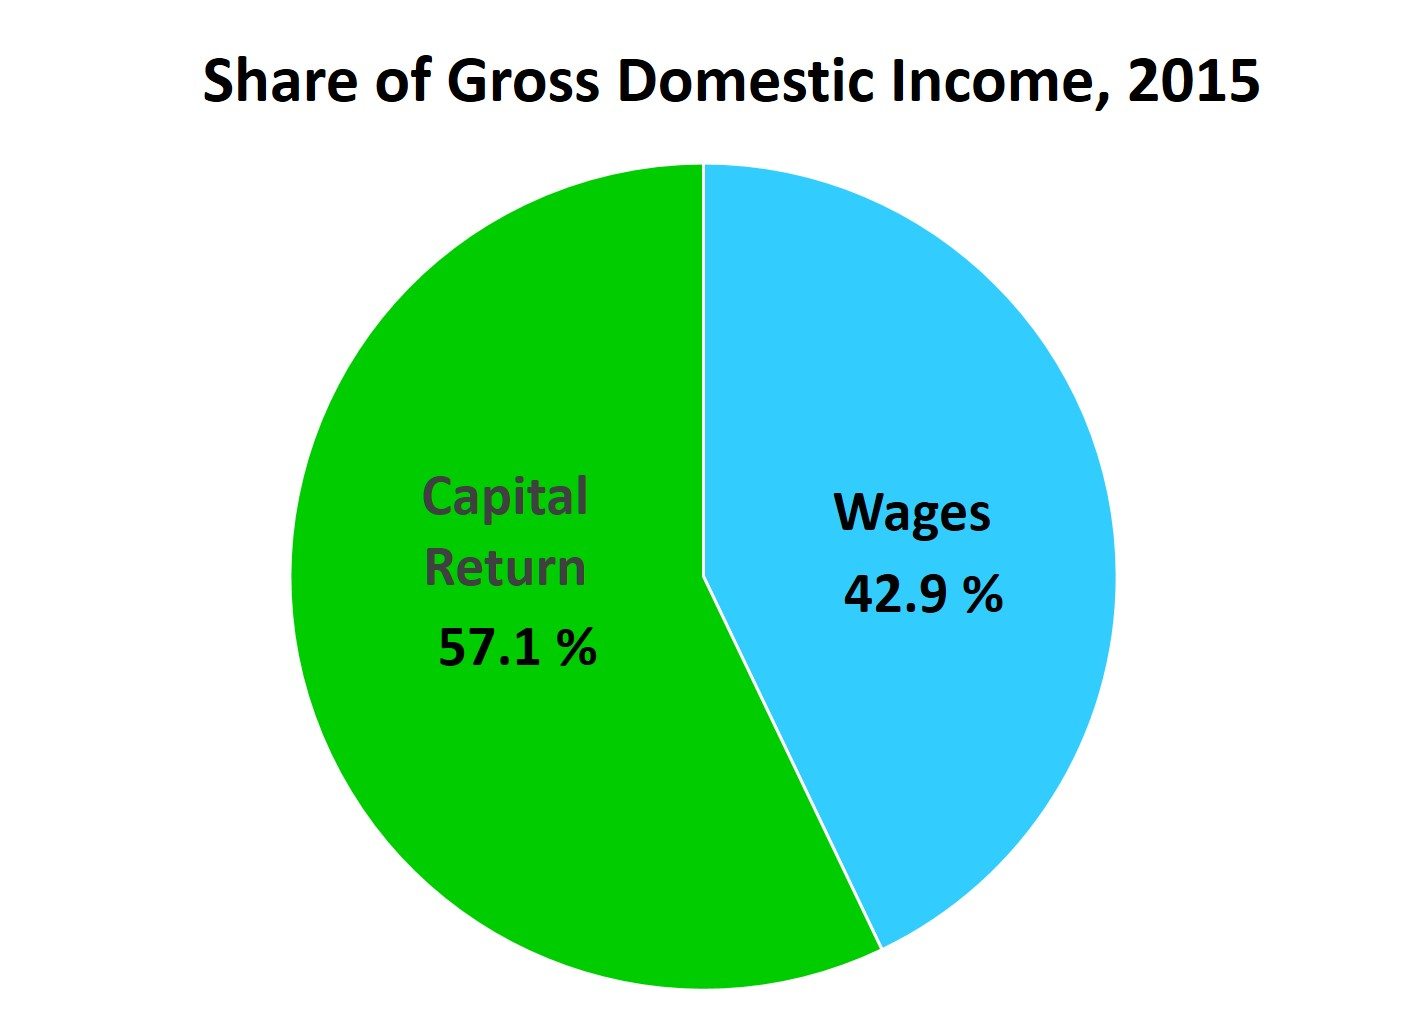 gross domestic product equal to social A social security payment received by a retired teacher e  net exports equal zero e exports exceed imports by $1 trillion 3-  1)which of the following is included in gross domestic product (gdp solution: the value of an accountant's services explanation: gdp includes the value of services 2) gross domestic product (gdp) equals $5.